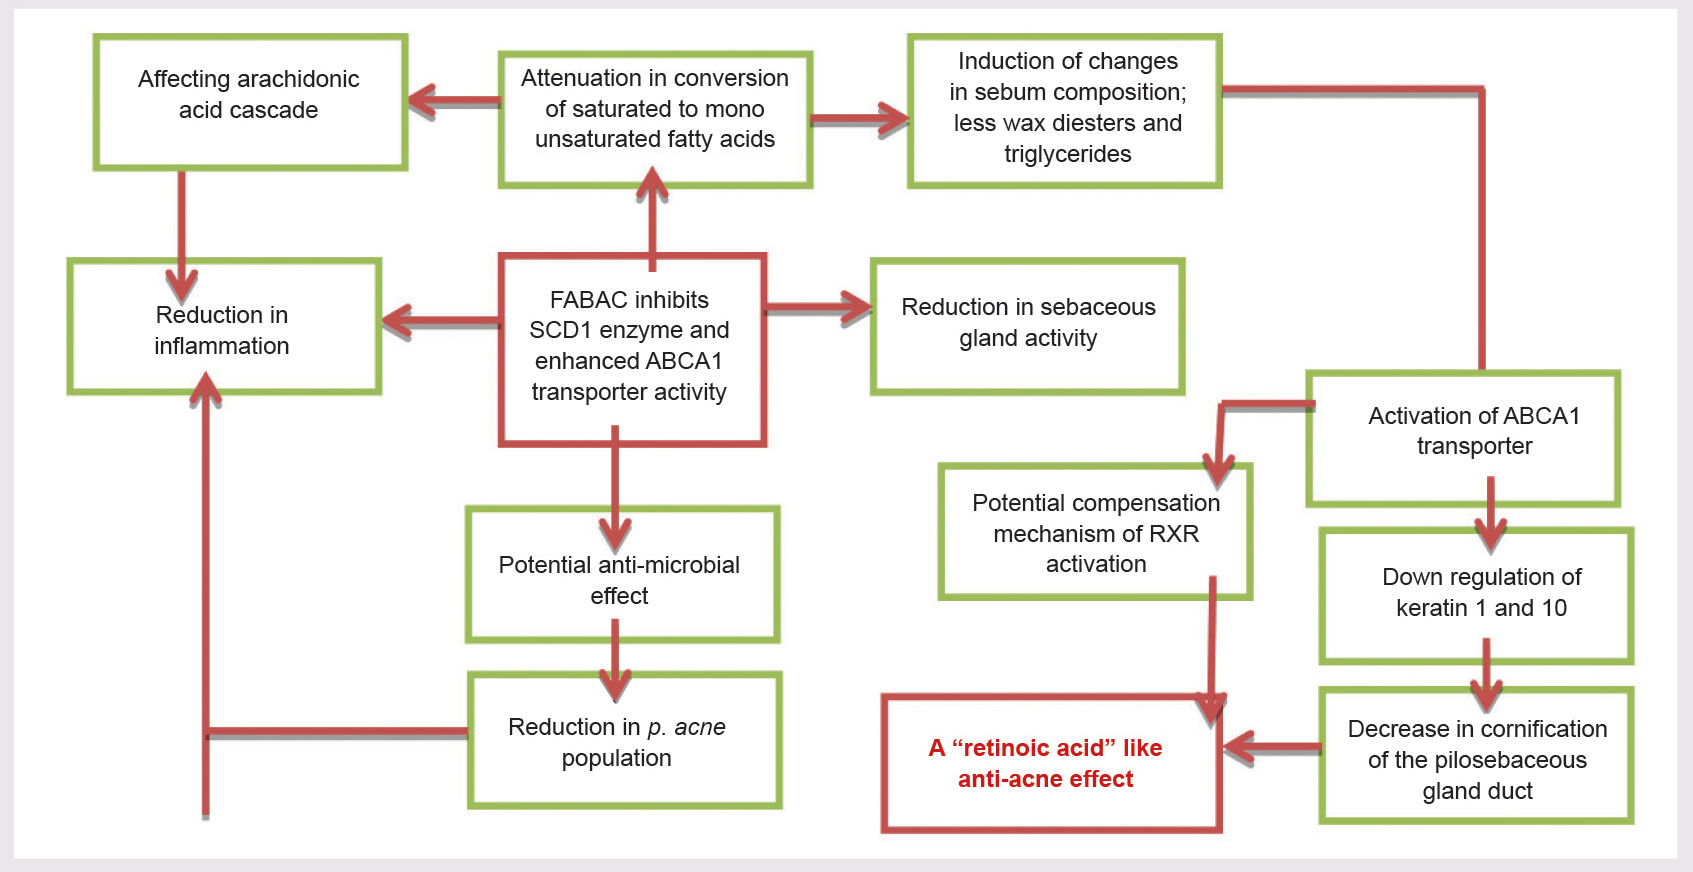 Figure 3. Diagram describing the hypothesis for FABAC anti-acne activity